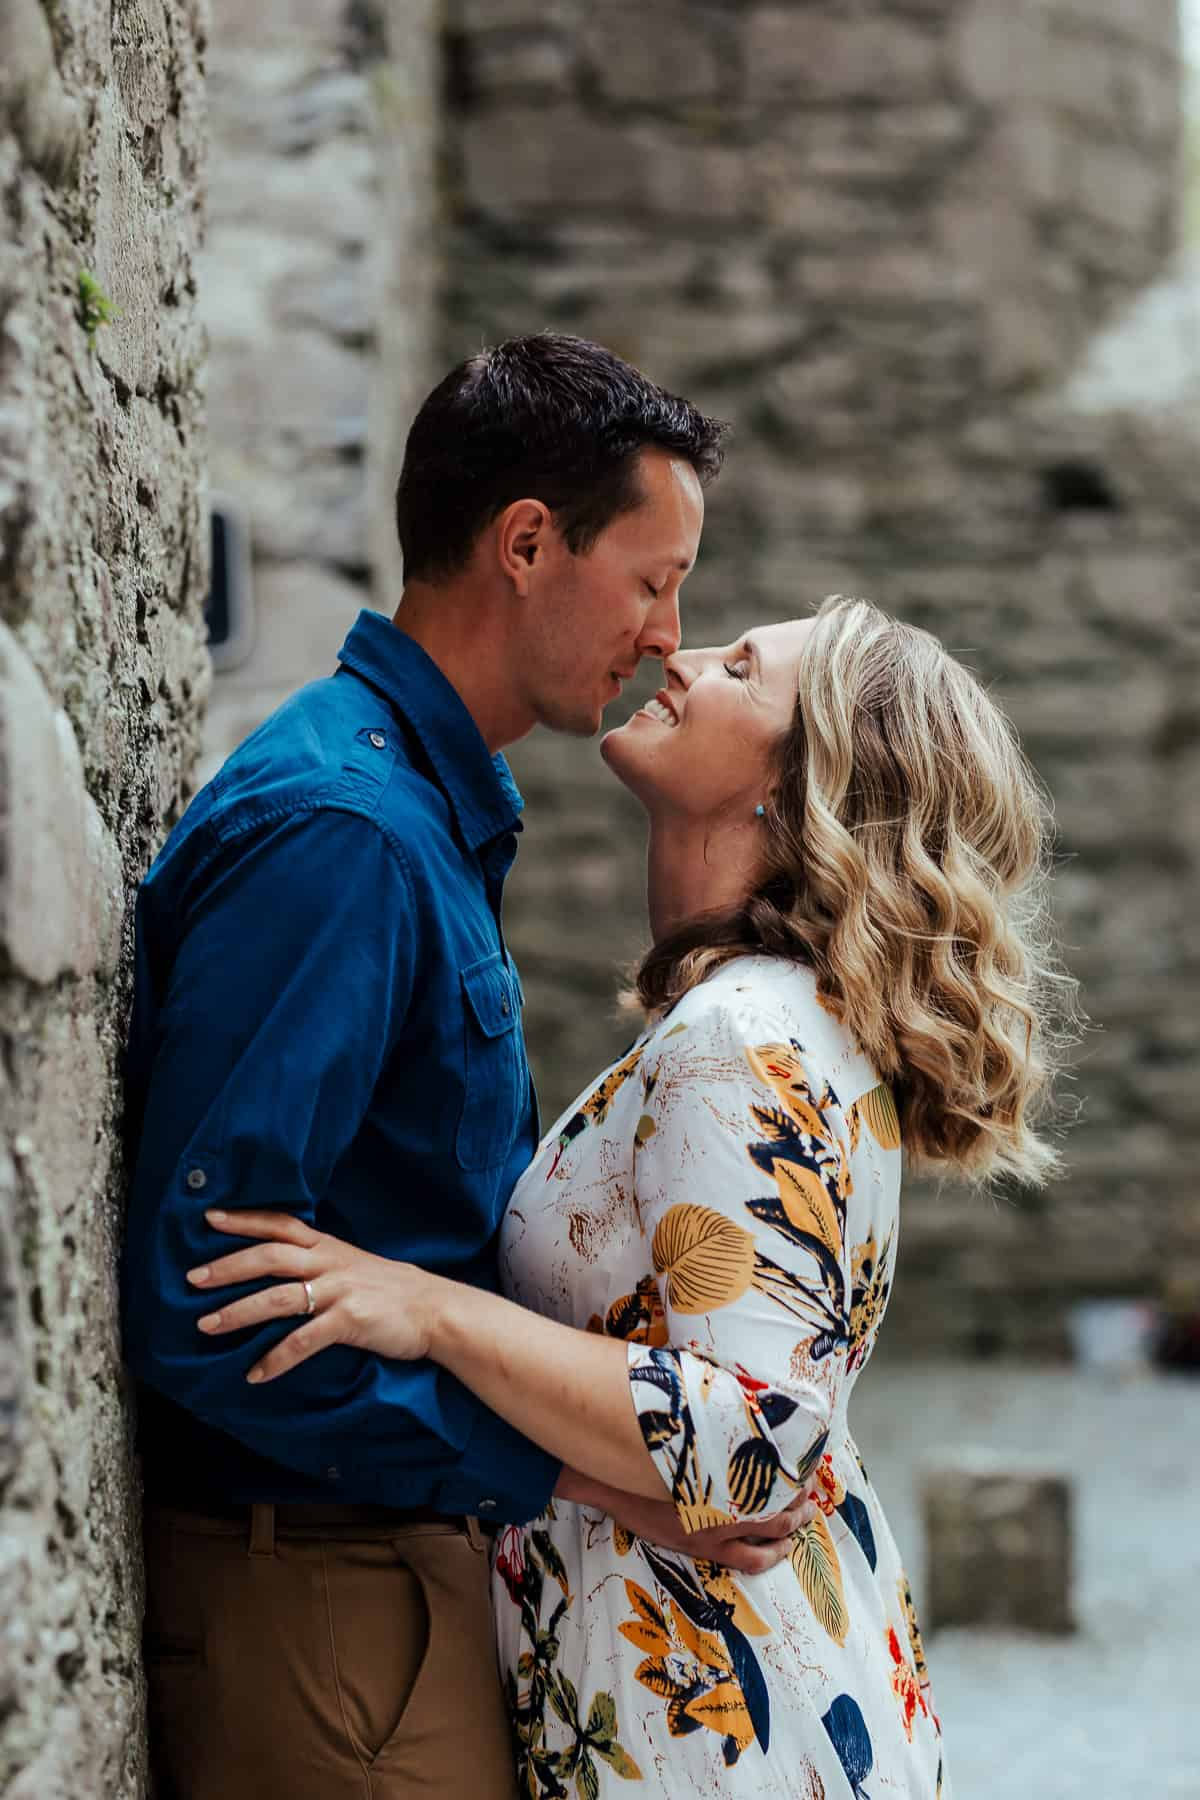 vow renewal photoshoot at corcomroe abbey co clare